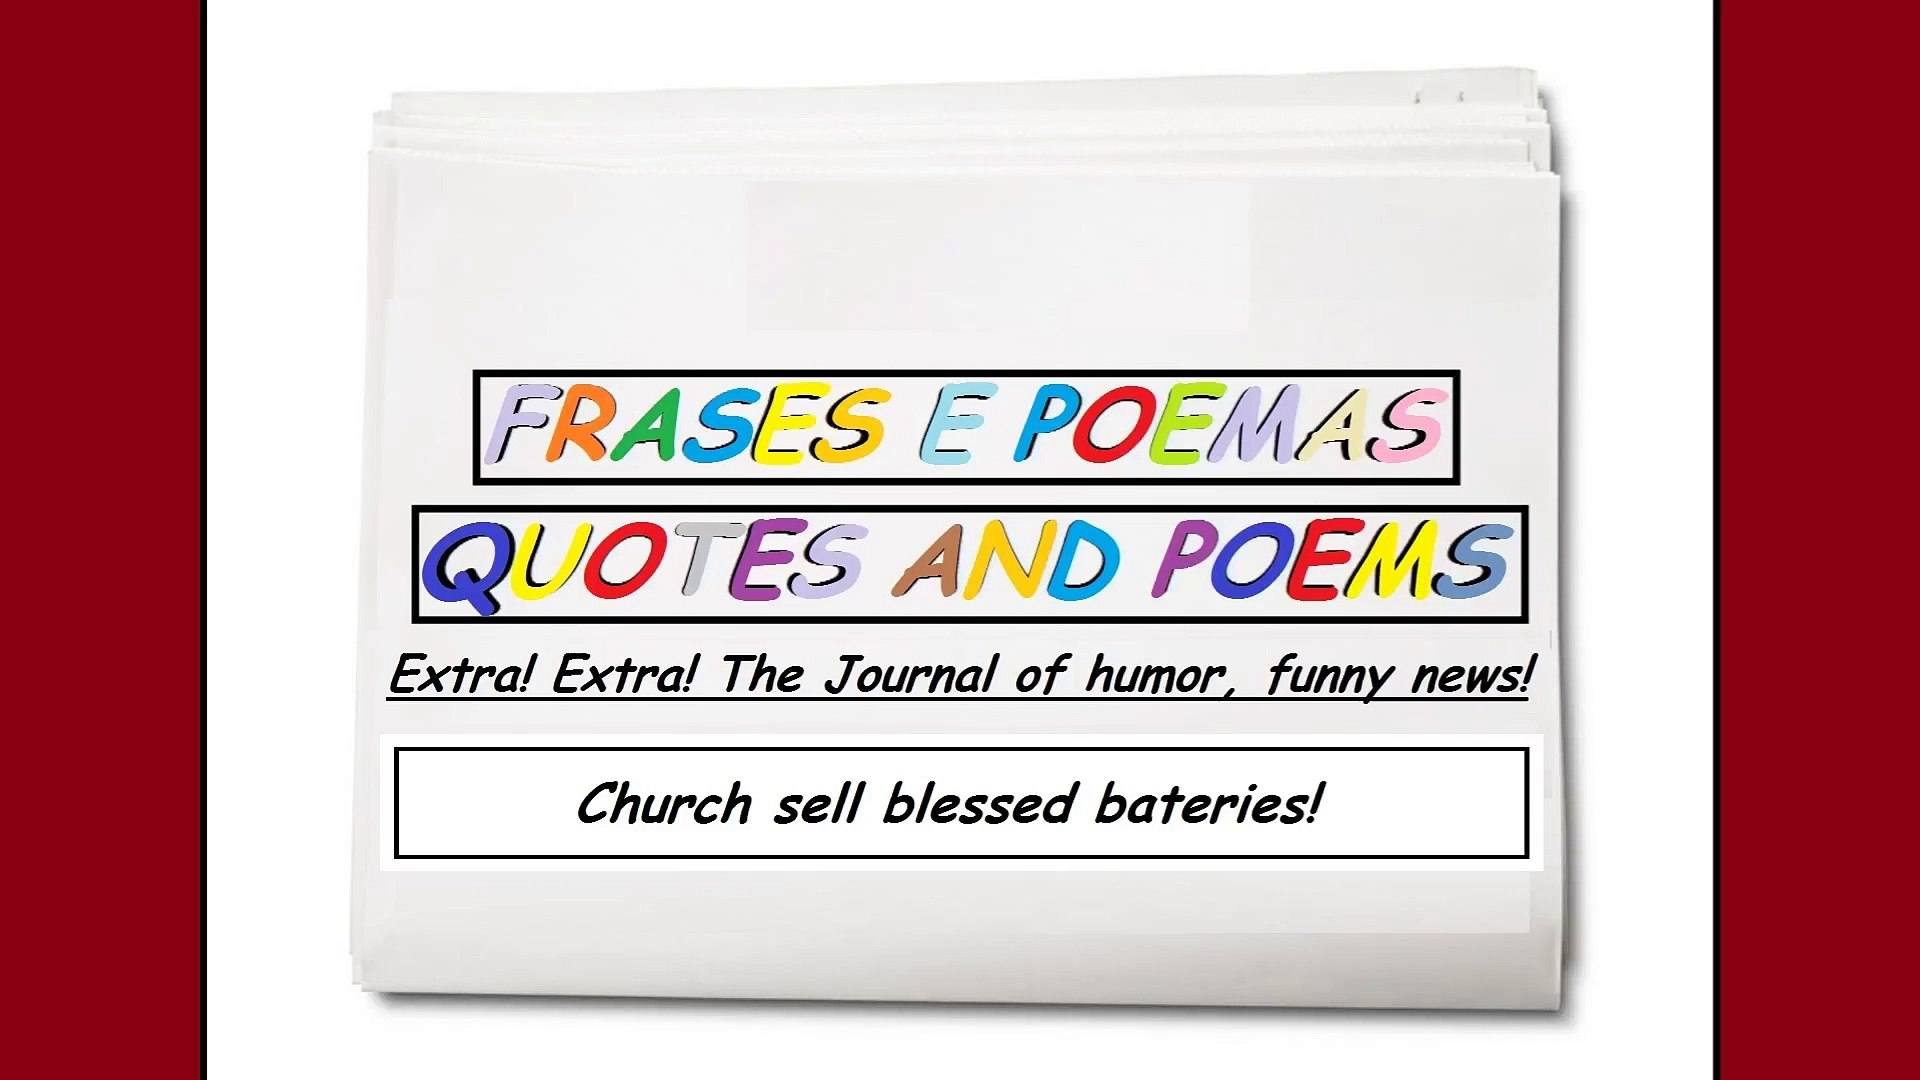 Funny news: Church sell blessed bateries! [Quotes and Poems]